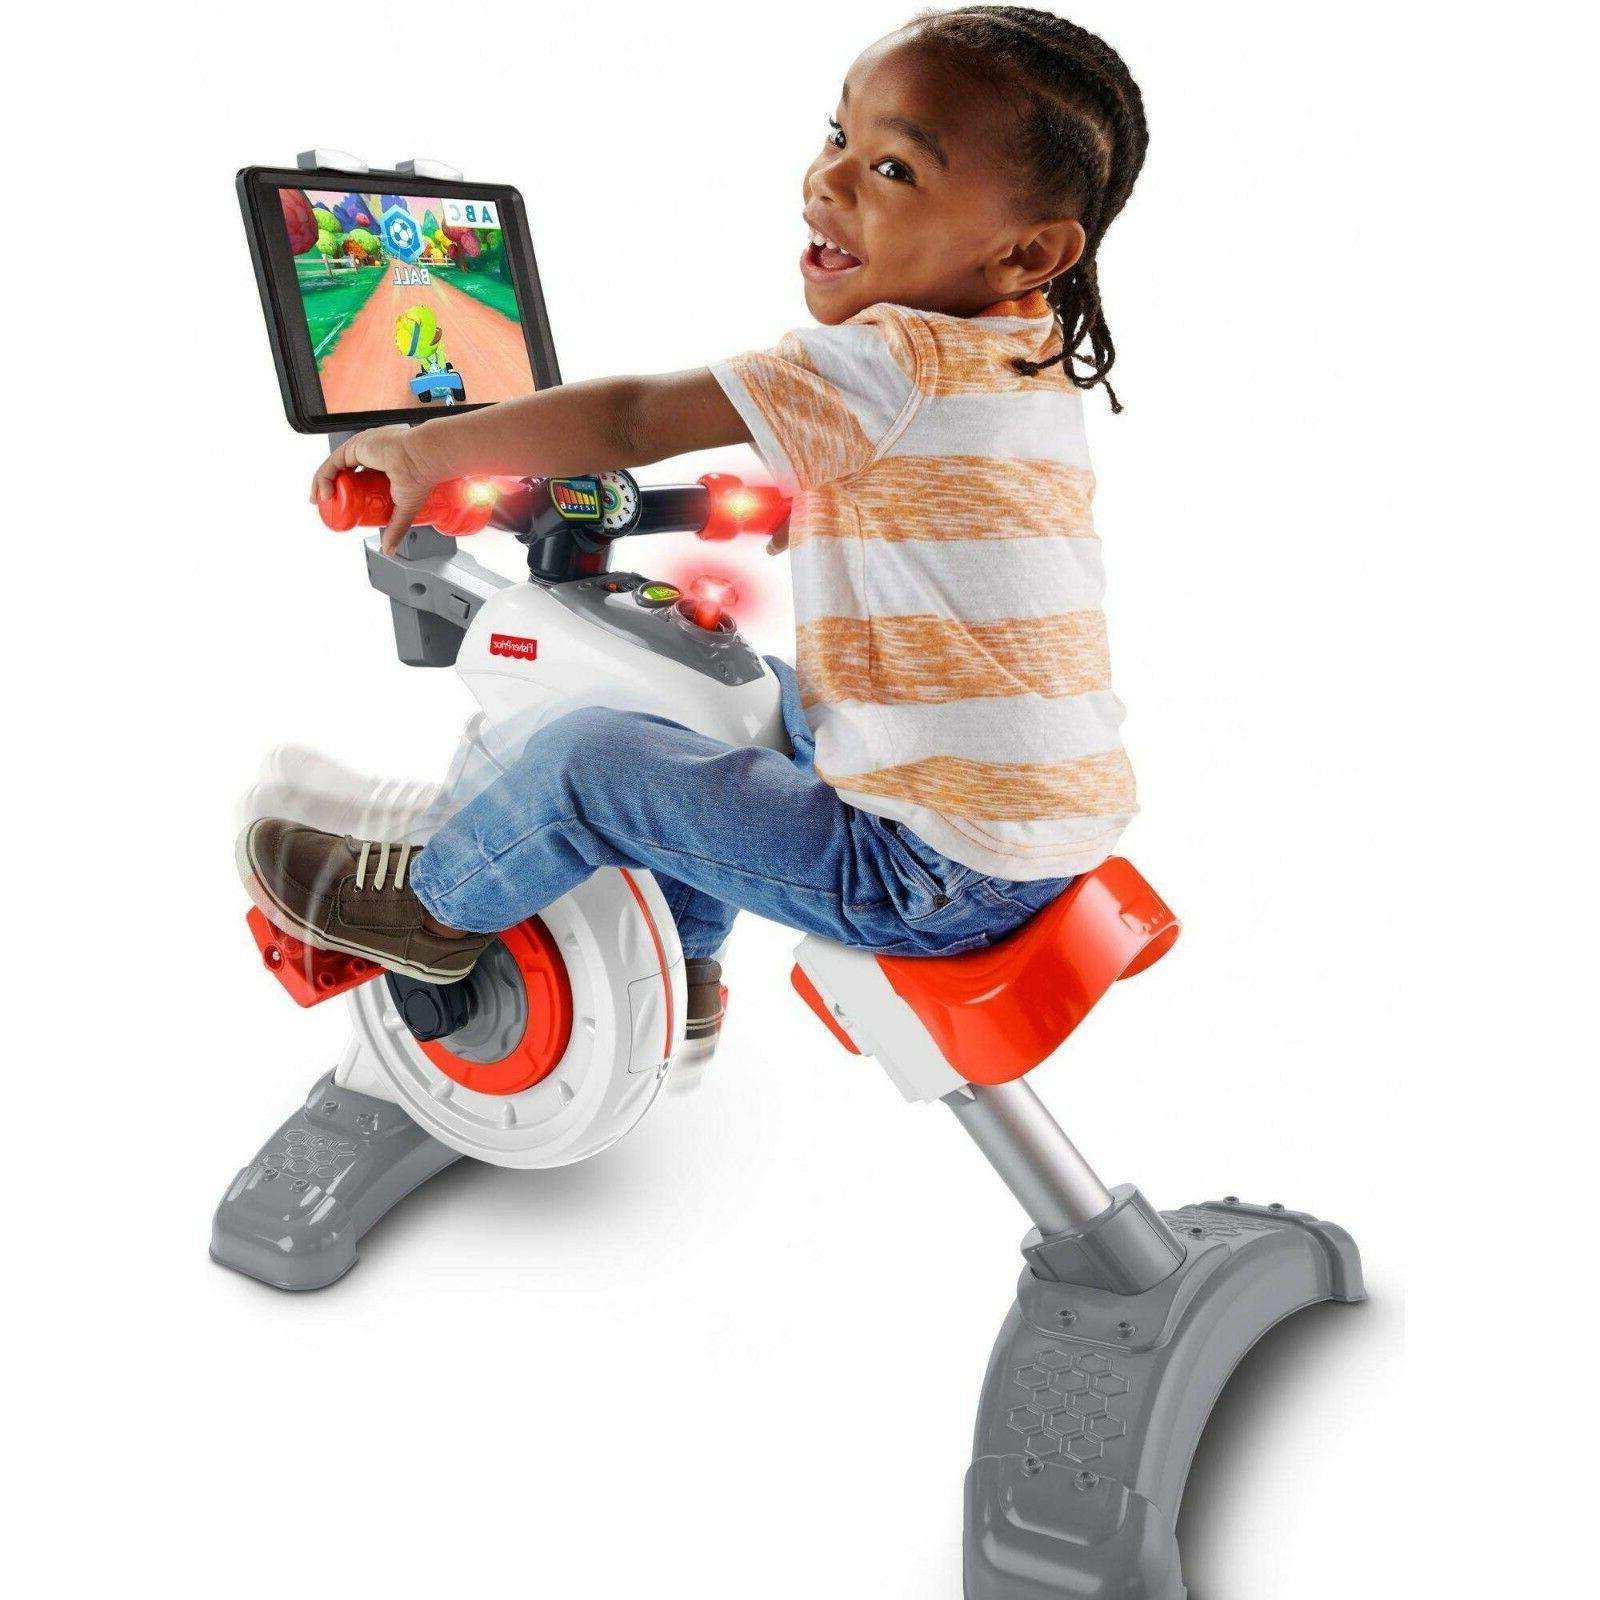 Ages 3-6 Preschool Fisher-Price Think /& Learn Smart Cycle Stationary Bike